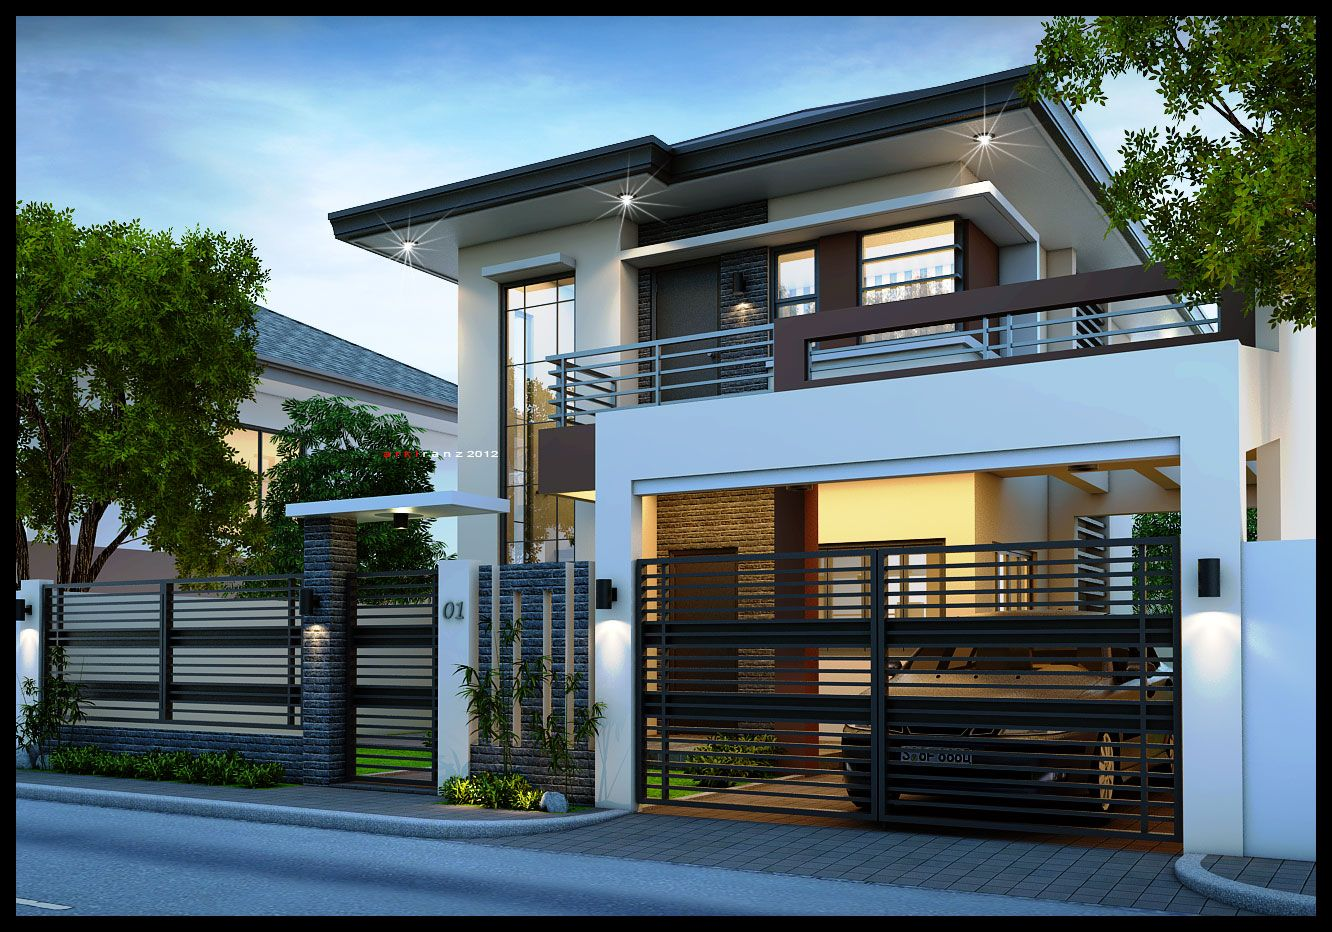 Simple two story house designs philippines easy ideas modern storey also homes in rh pinterest